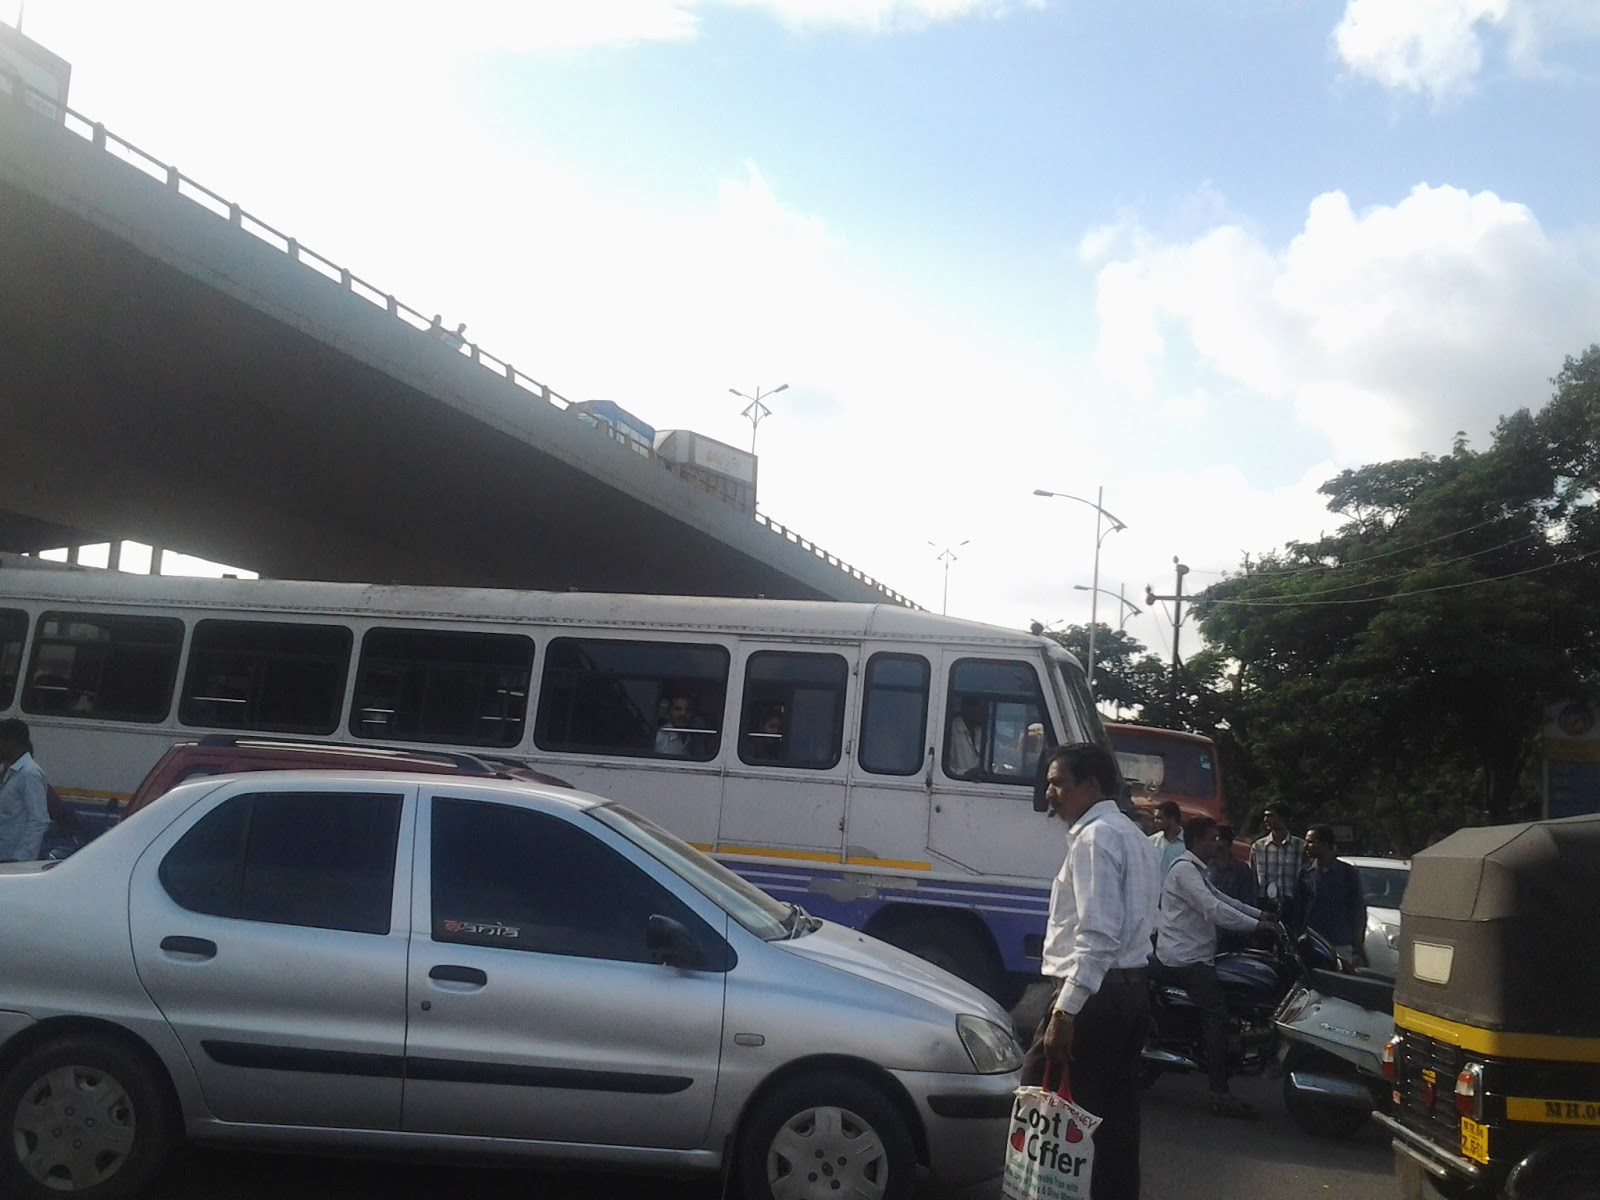 ACCIDENT TOOK PLACE IN PANVEL,,HUMAN WELFARE MEMBERS HELPED POLICE